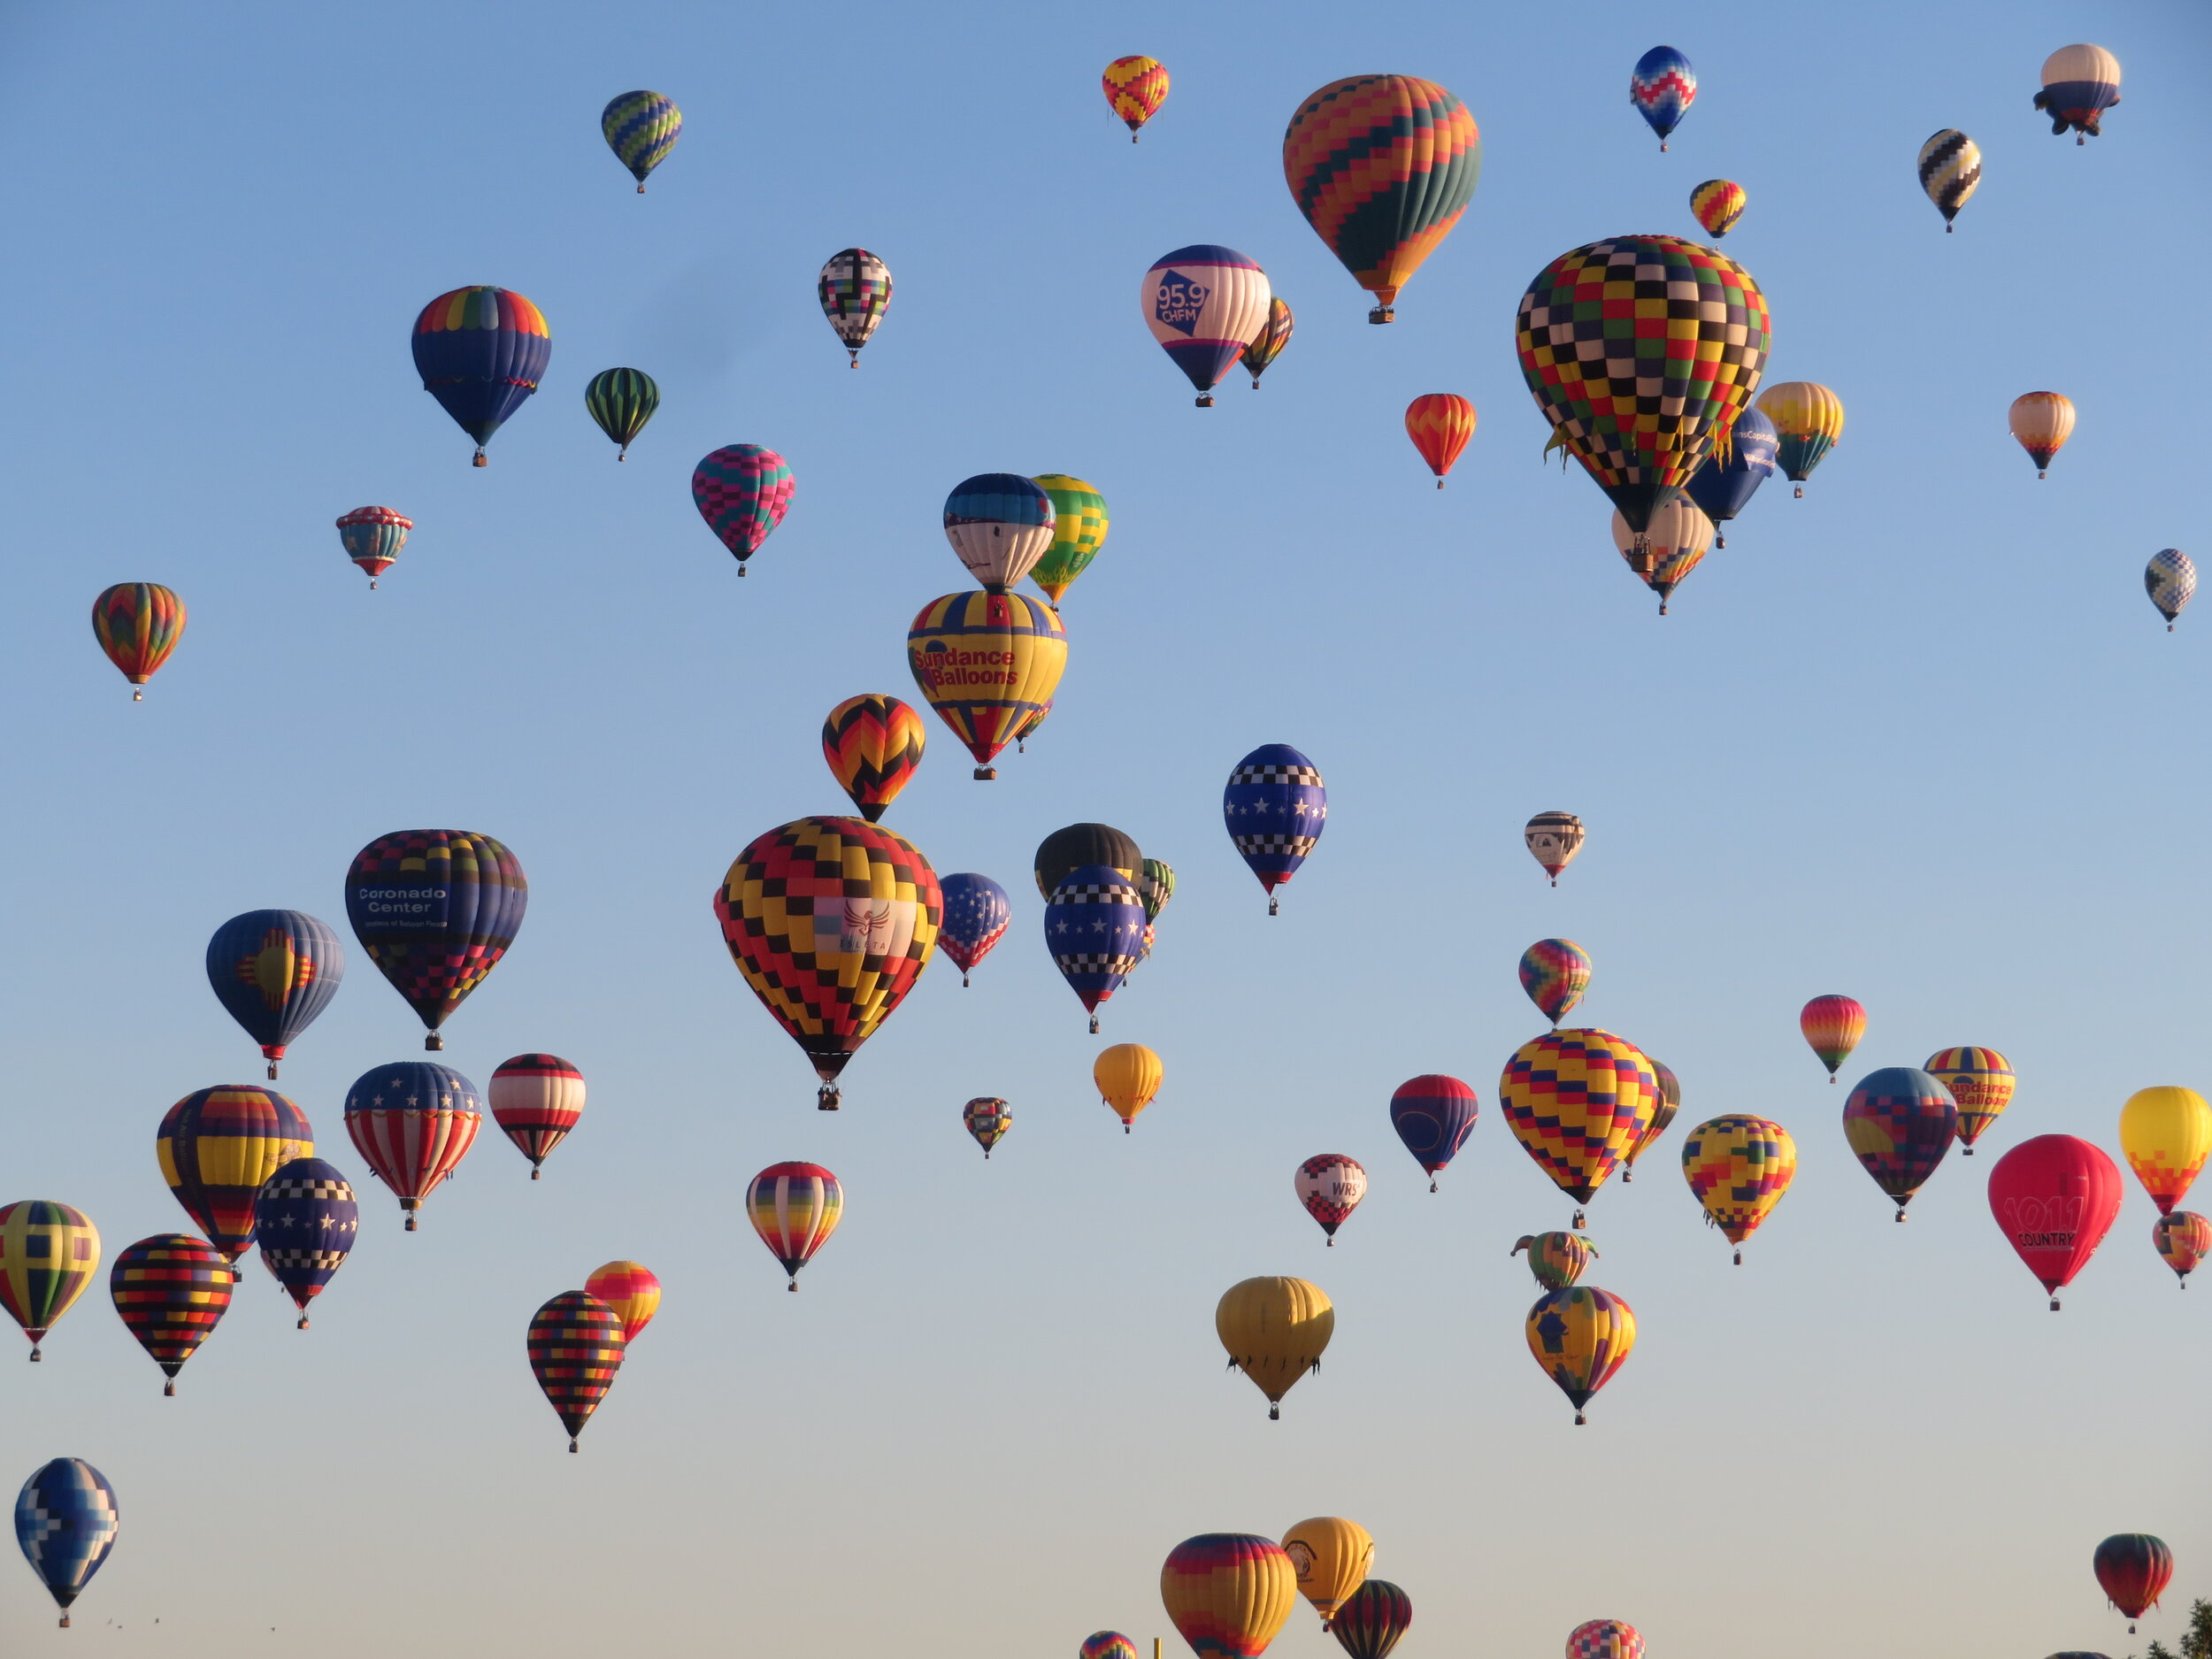 A few of thw balloons in the mass ascension